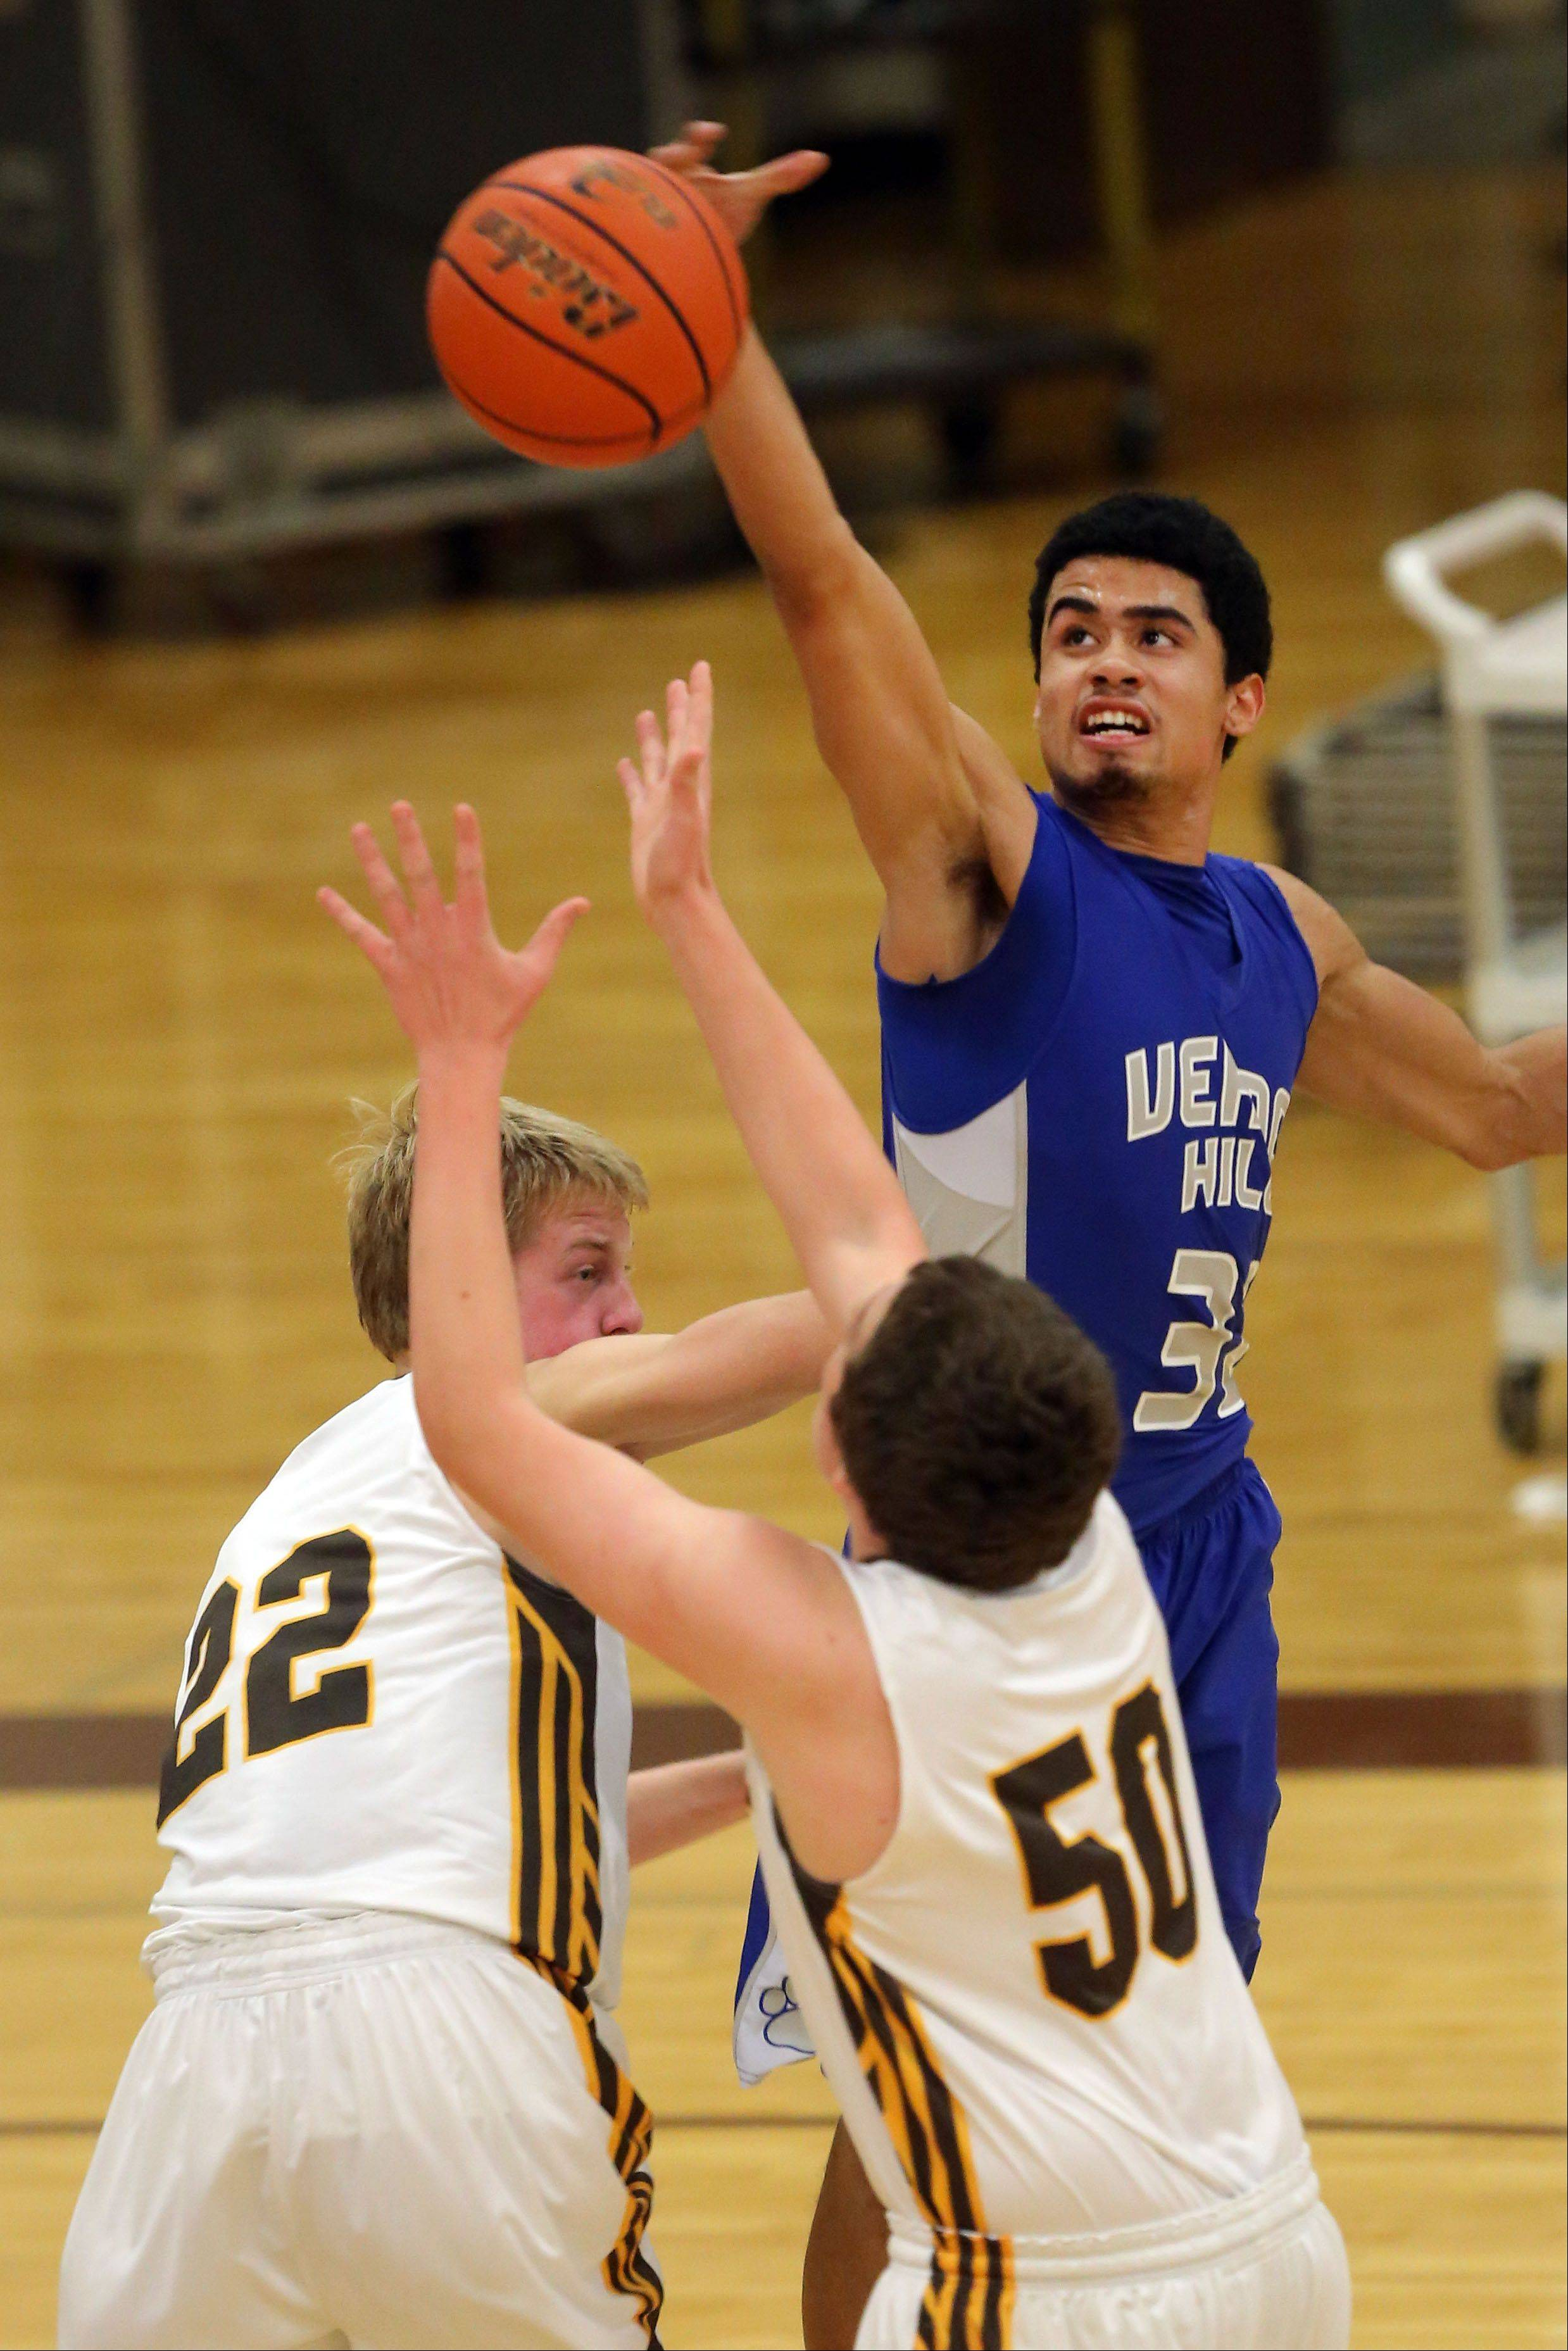 Vernon Hills' Lem Turner, right, blocks the shot of Carmel's Lee Bowen during Wednesday's game in Mundelein.